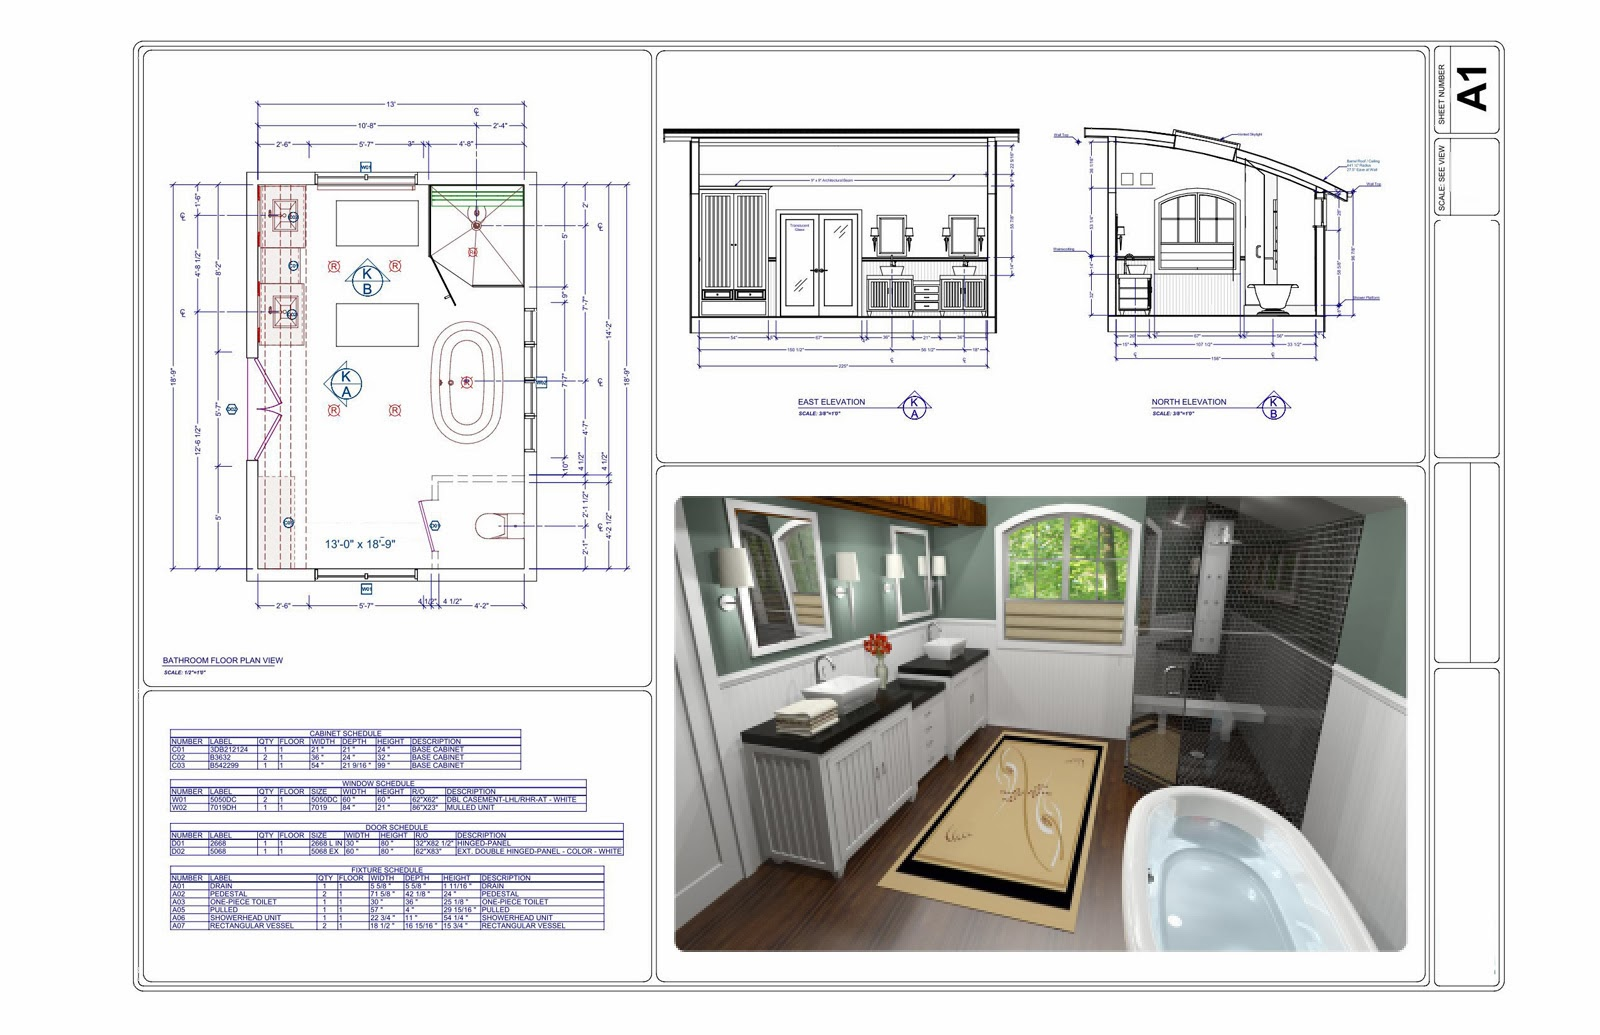 Cad kitchen design software Kitchen design diy software